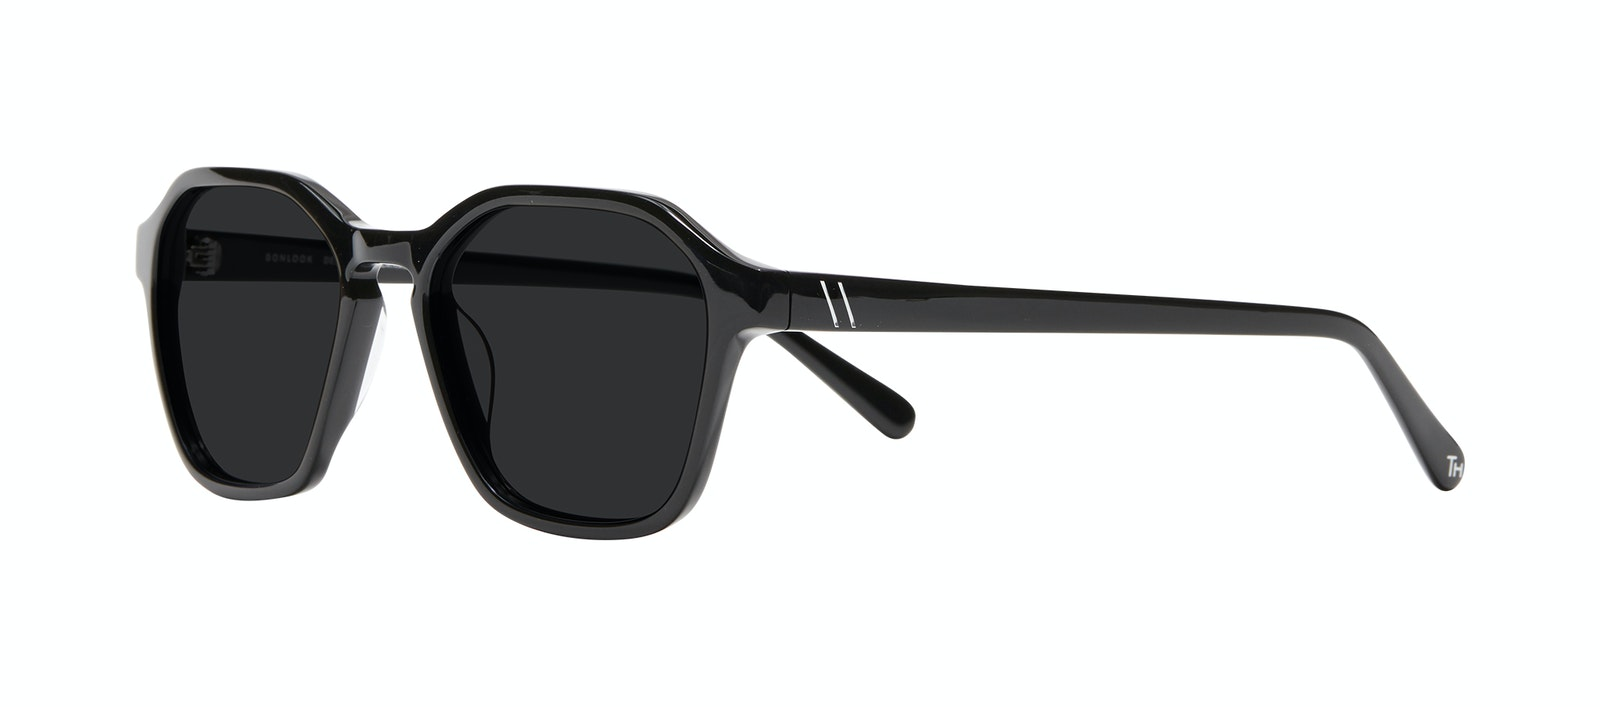 Affordable Fashion Glasses Square Sunglasses Men Birdie Black Tilt